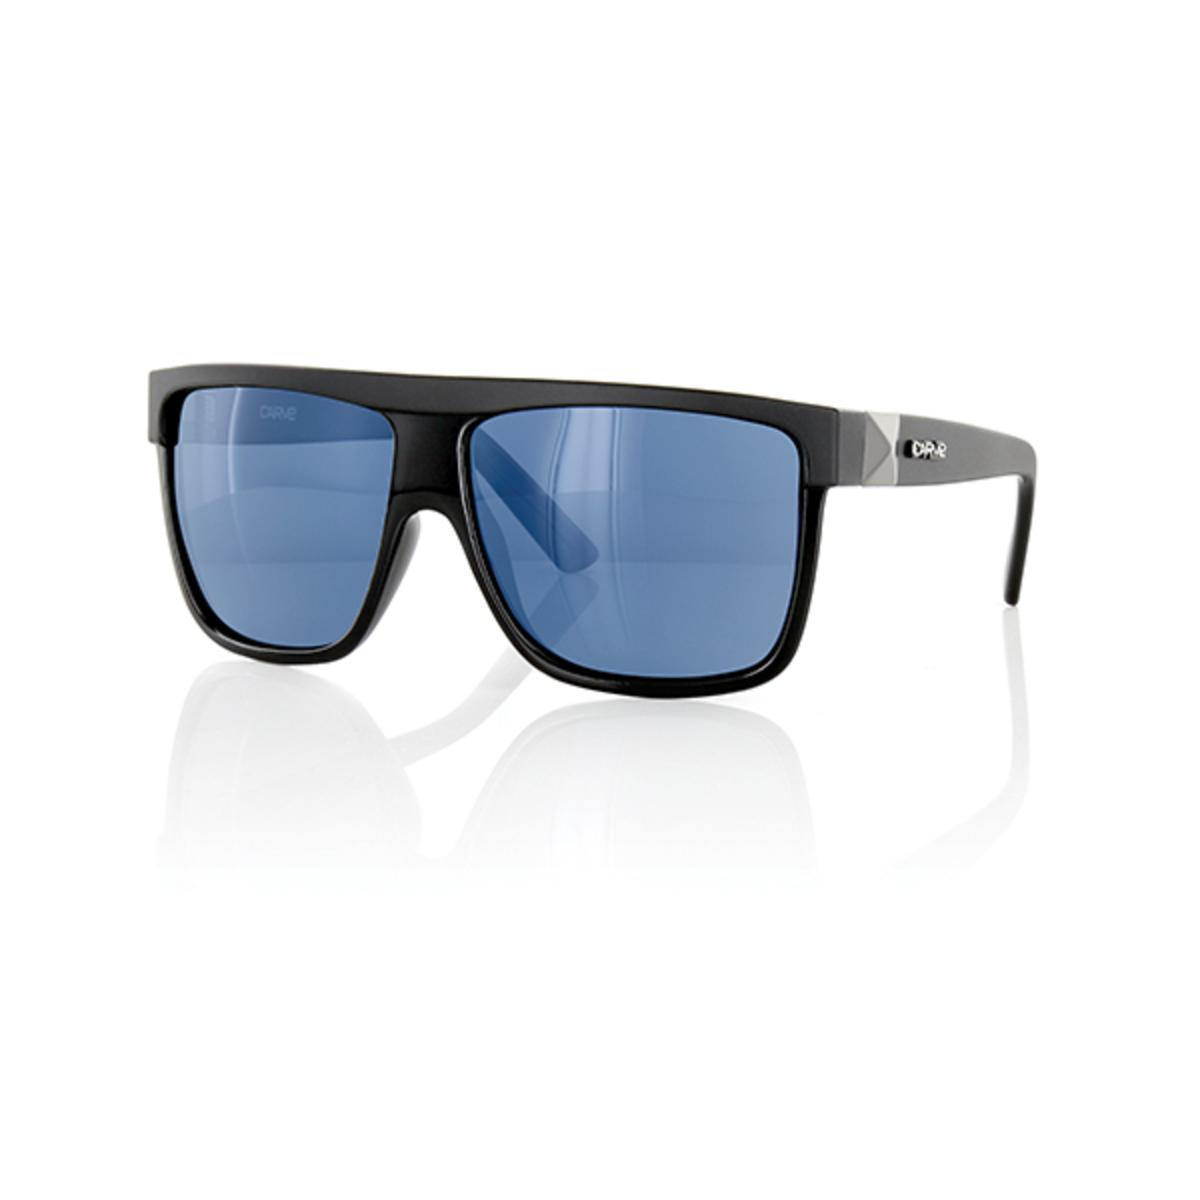 Carve Rocker Unisex Sunglasses